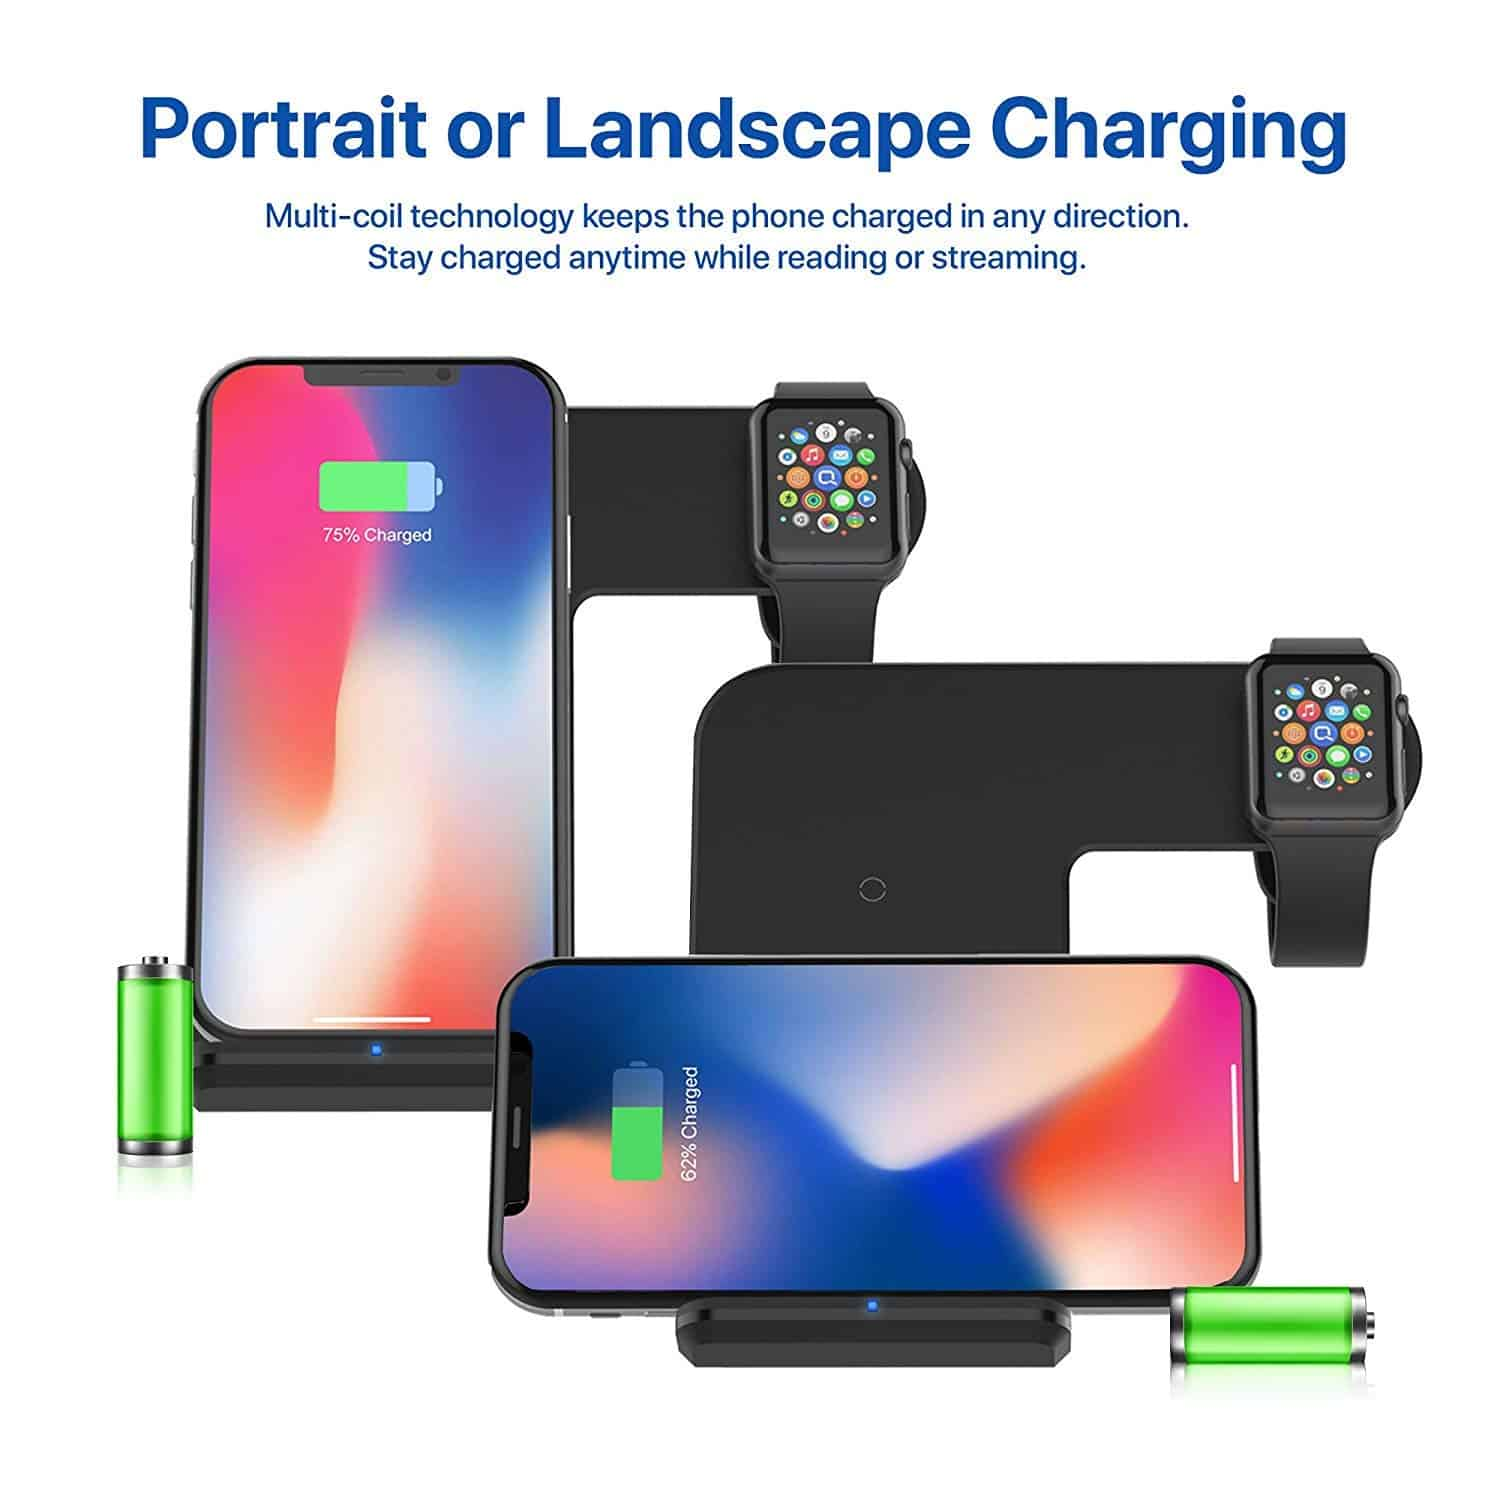 Portrait and Landscape Charging for your Mobile